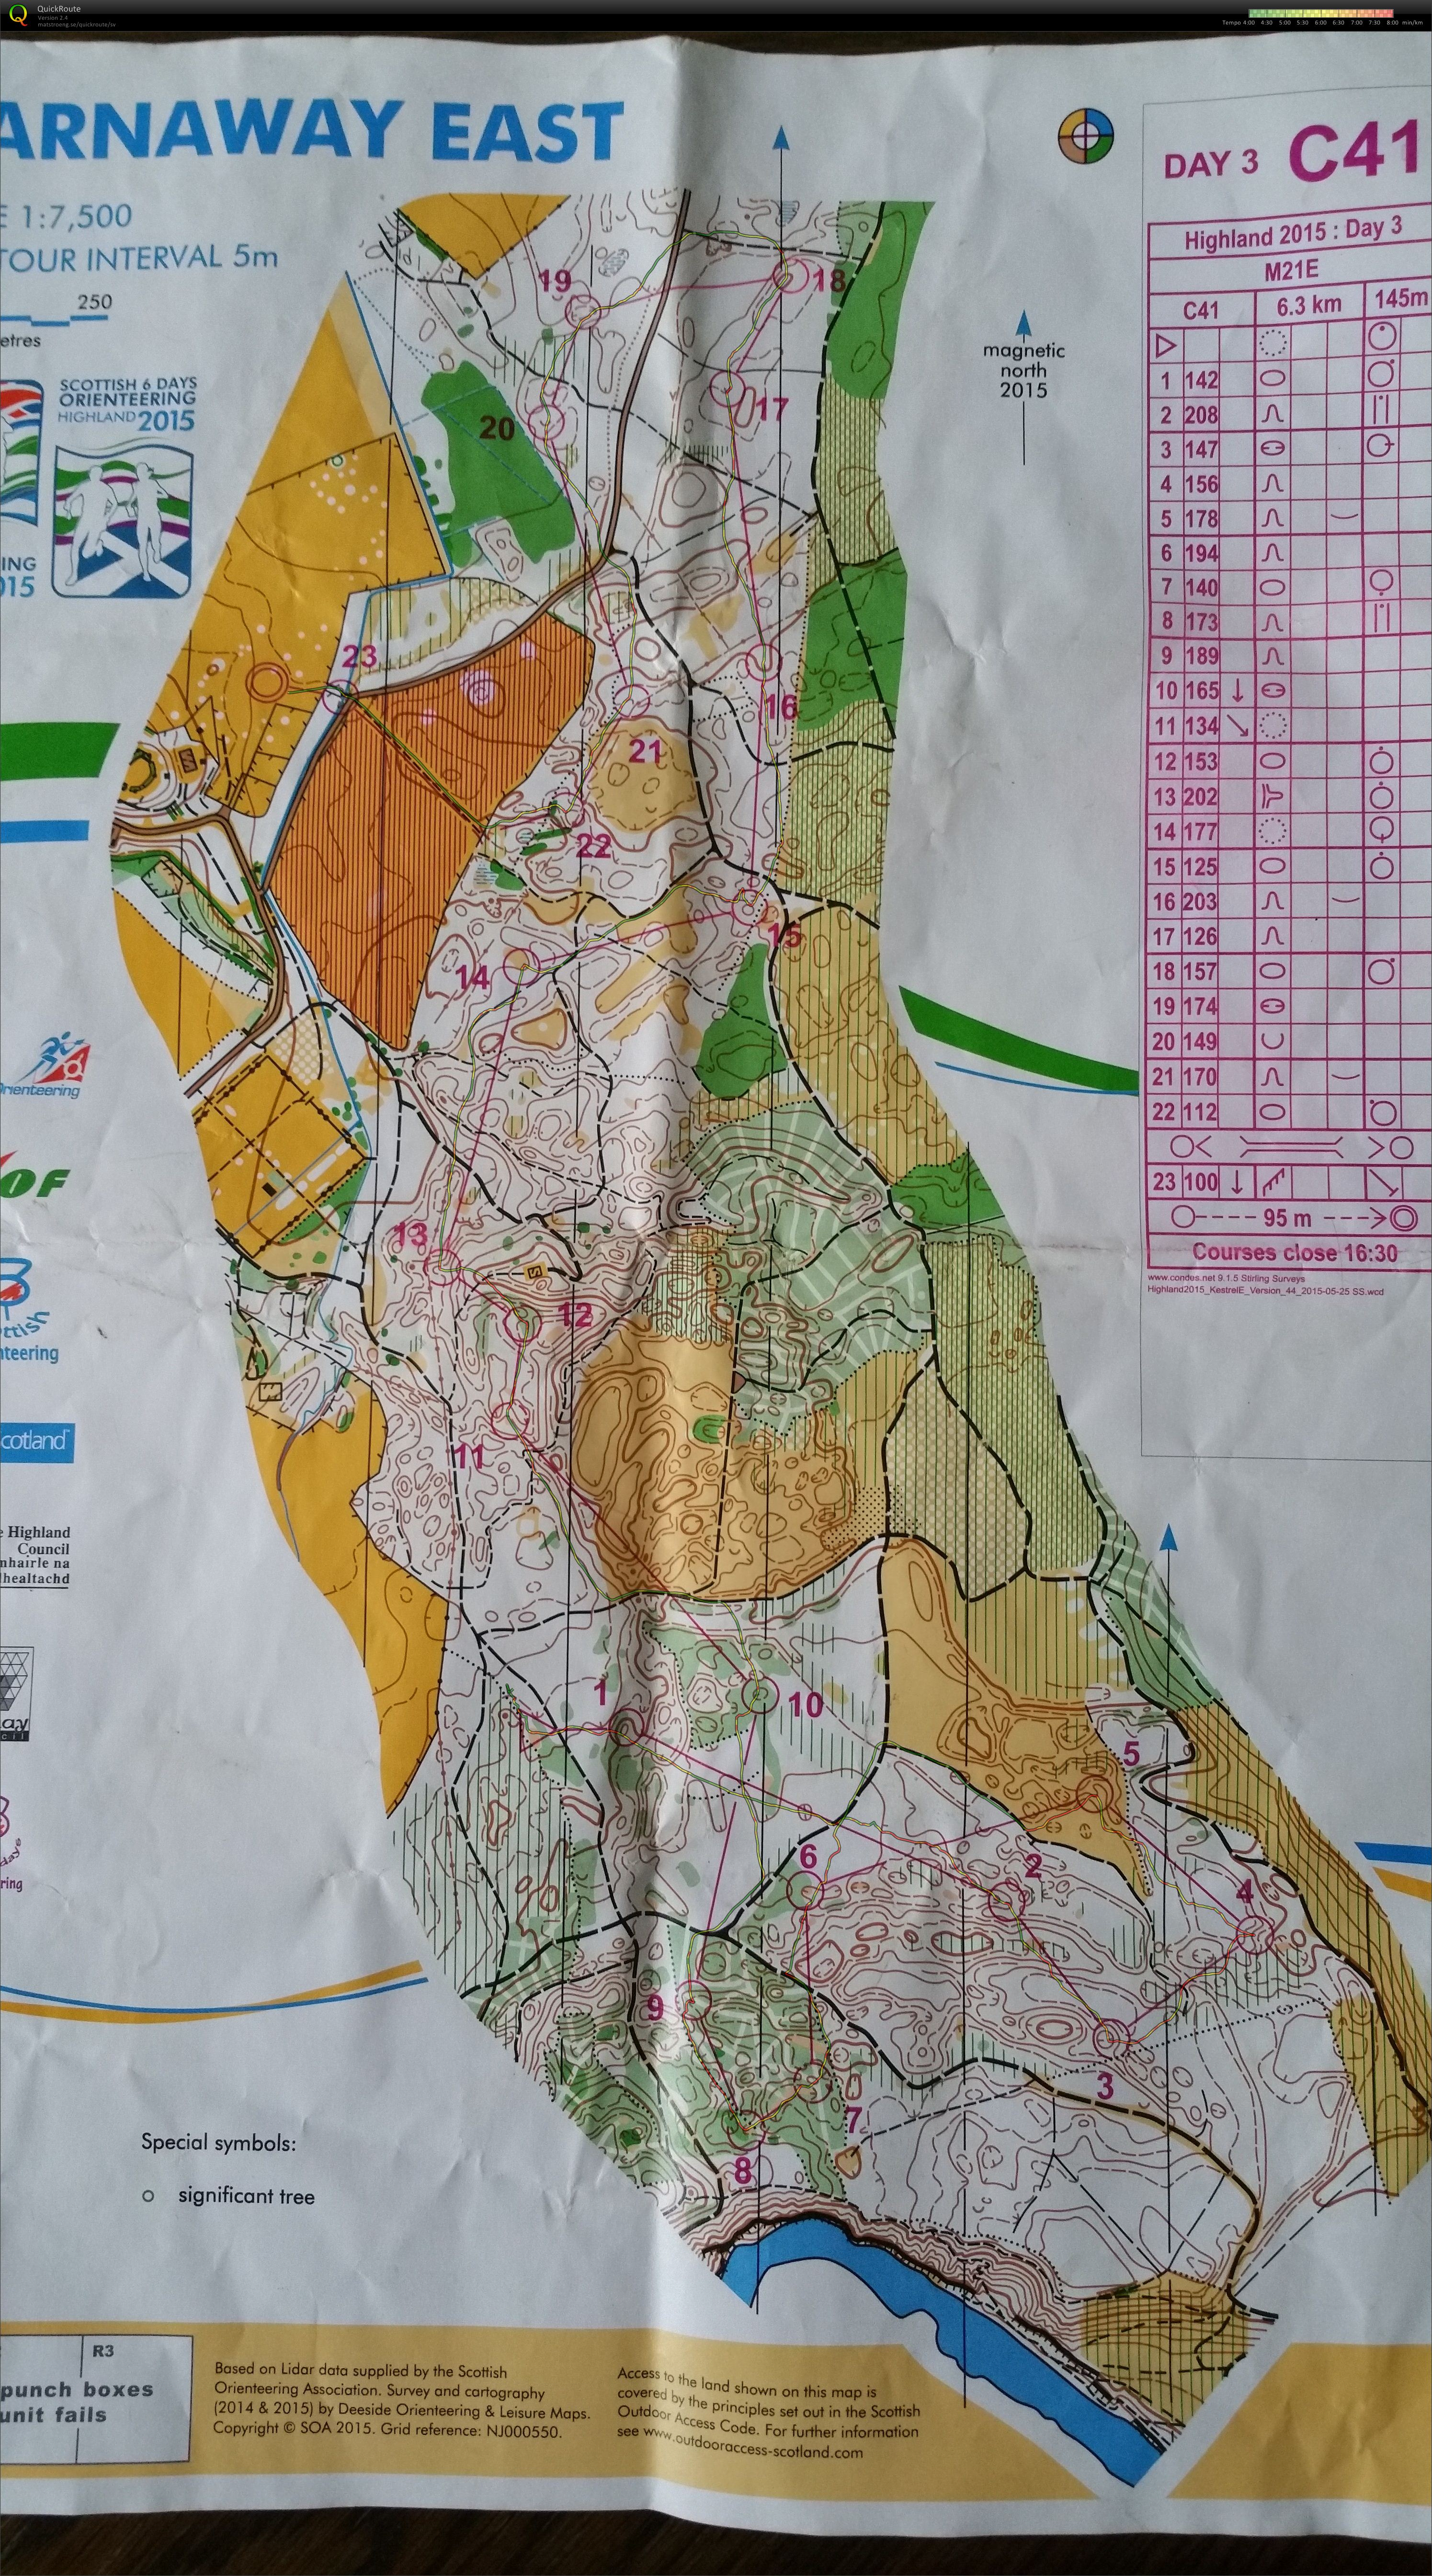 Scottish 6-days, etapp 3, H21 Elit (2015-08-04)